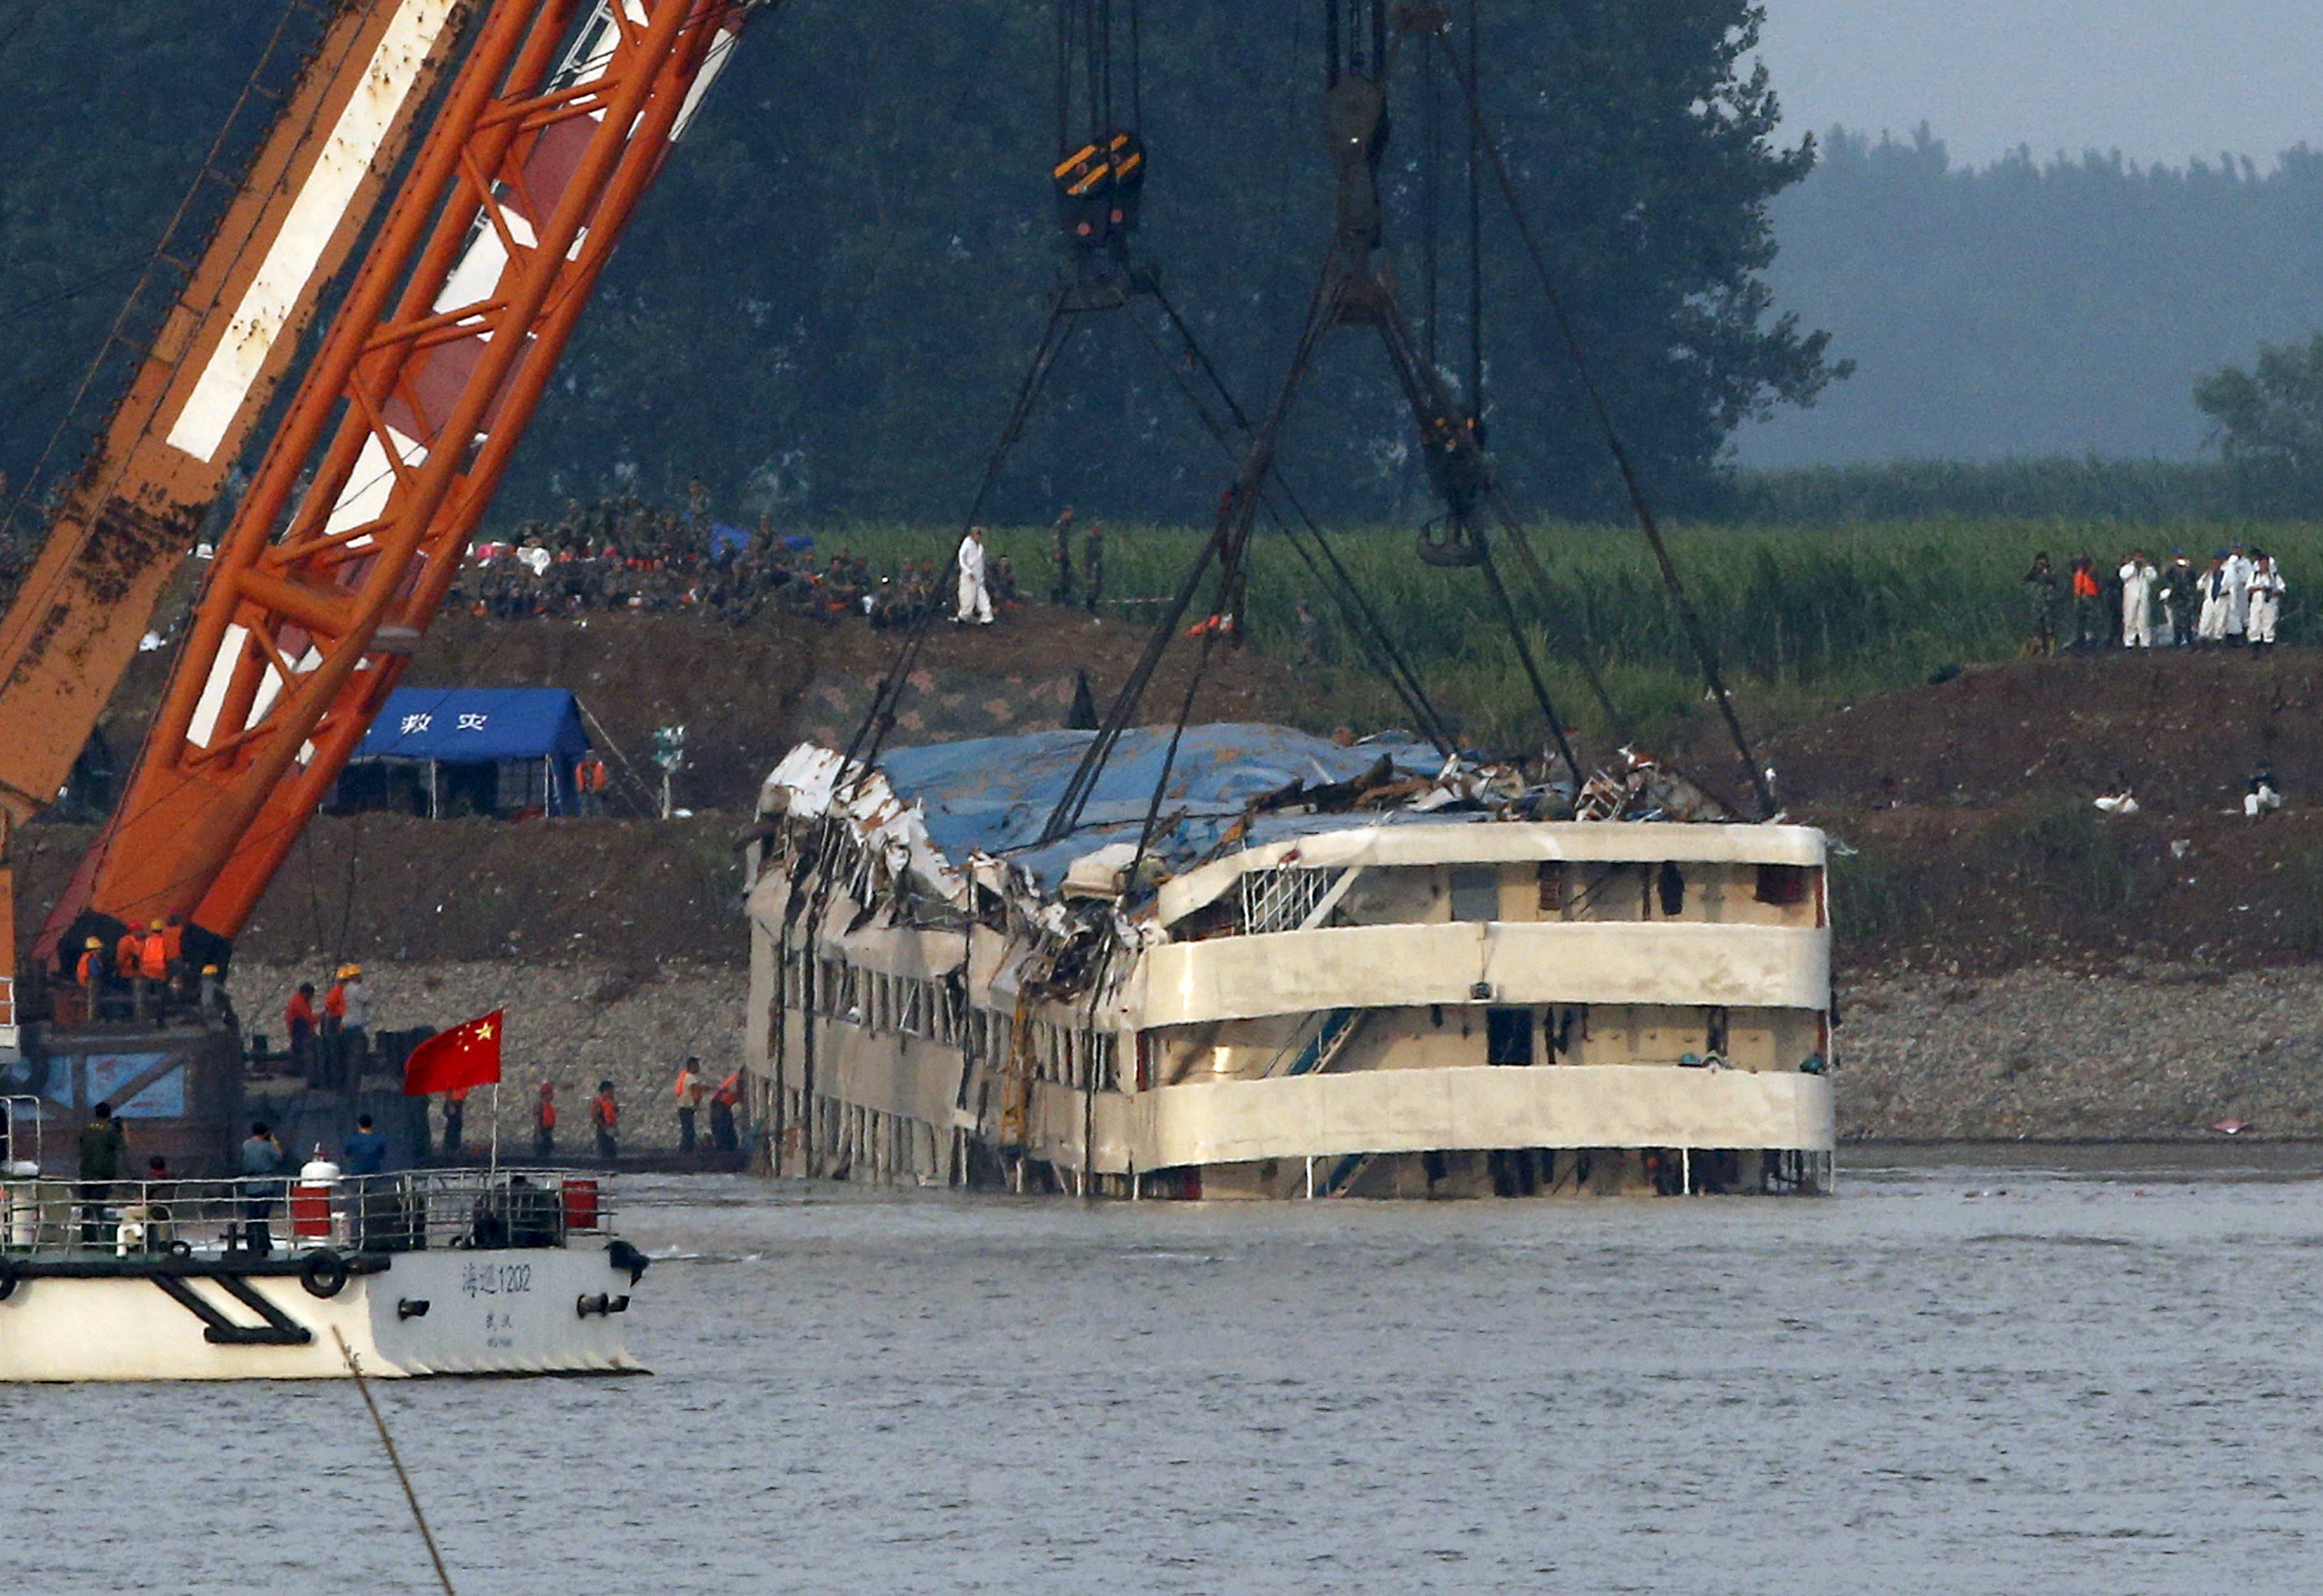 A rescue team works on lifting the capsized cruise ship Eastern Star in the Jianli section of Yangtze River, Hubei province, China, June 5, 2015. The ship eventually resumed a floating position once the water drained out of its cabins. Kim Kyung-Hoon/Reuters